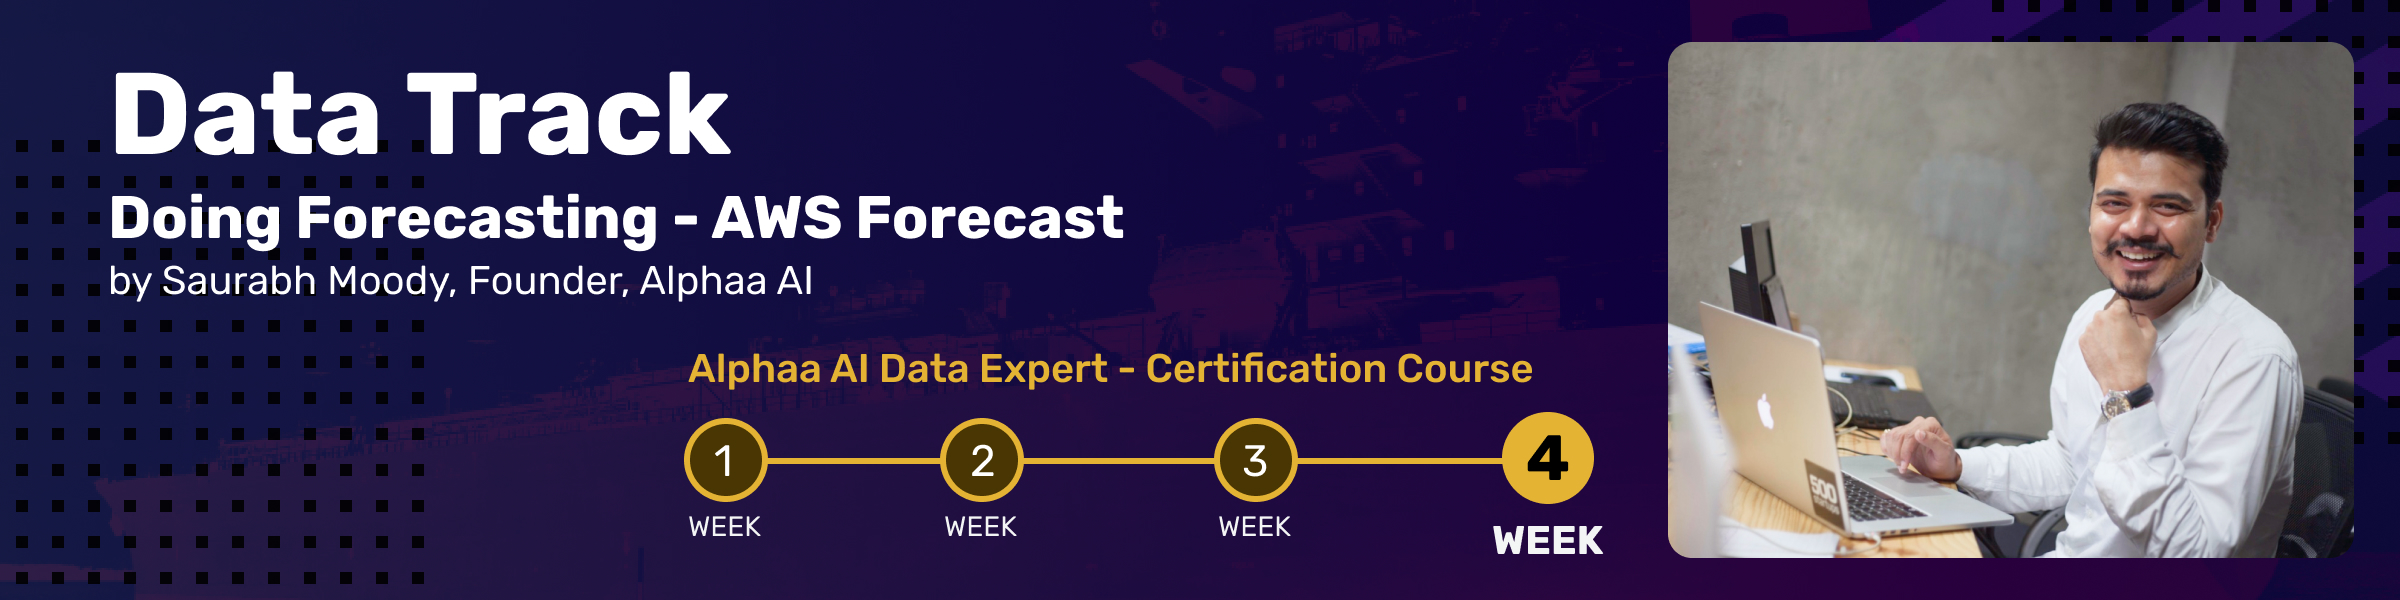 This is the fourth Session of Alphaa AI Data Expert Certification Course: Data Track 4.In the final chapter, we will focus on predictive analytics using popular online AI/ML services (Such as AWS). The session will focus on creating easy forecast models for business use-cases. This will also include a live demo.